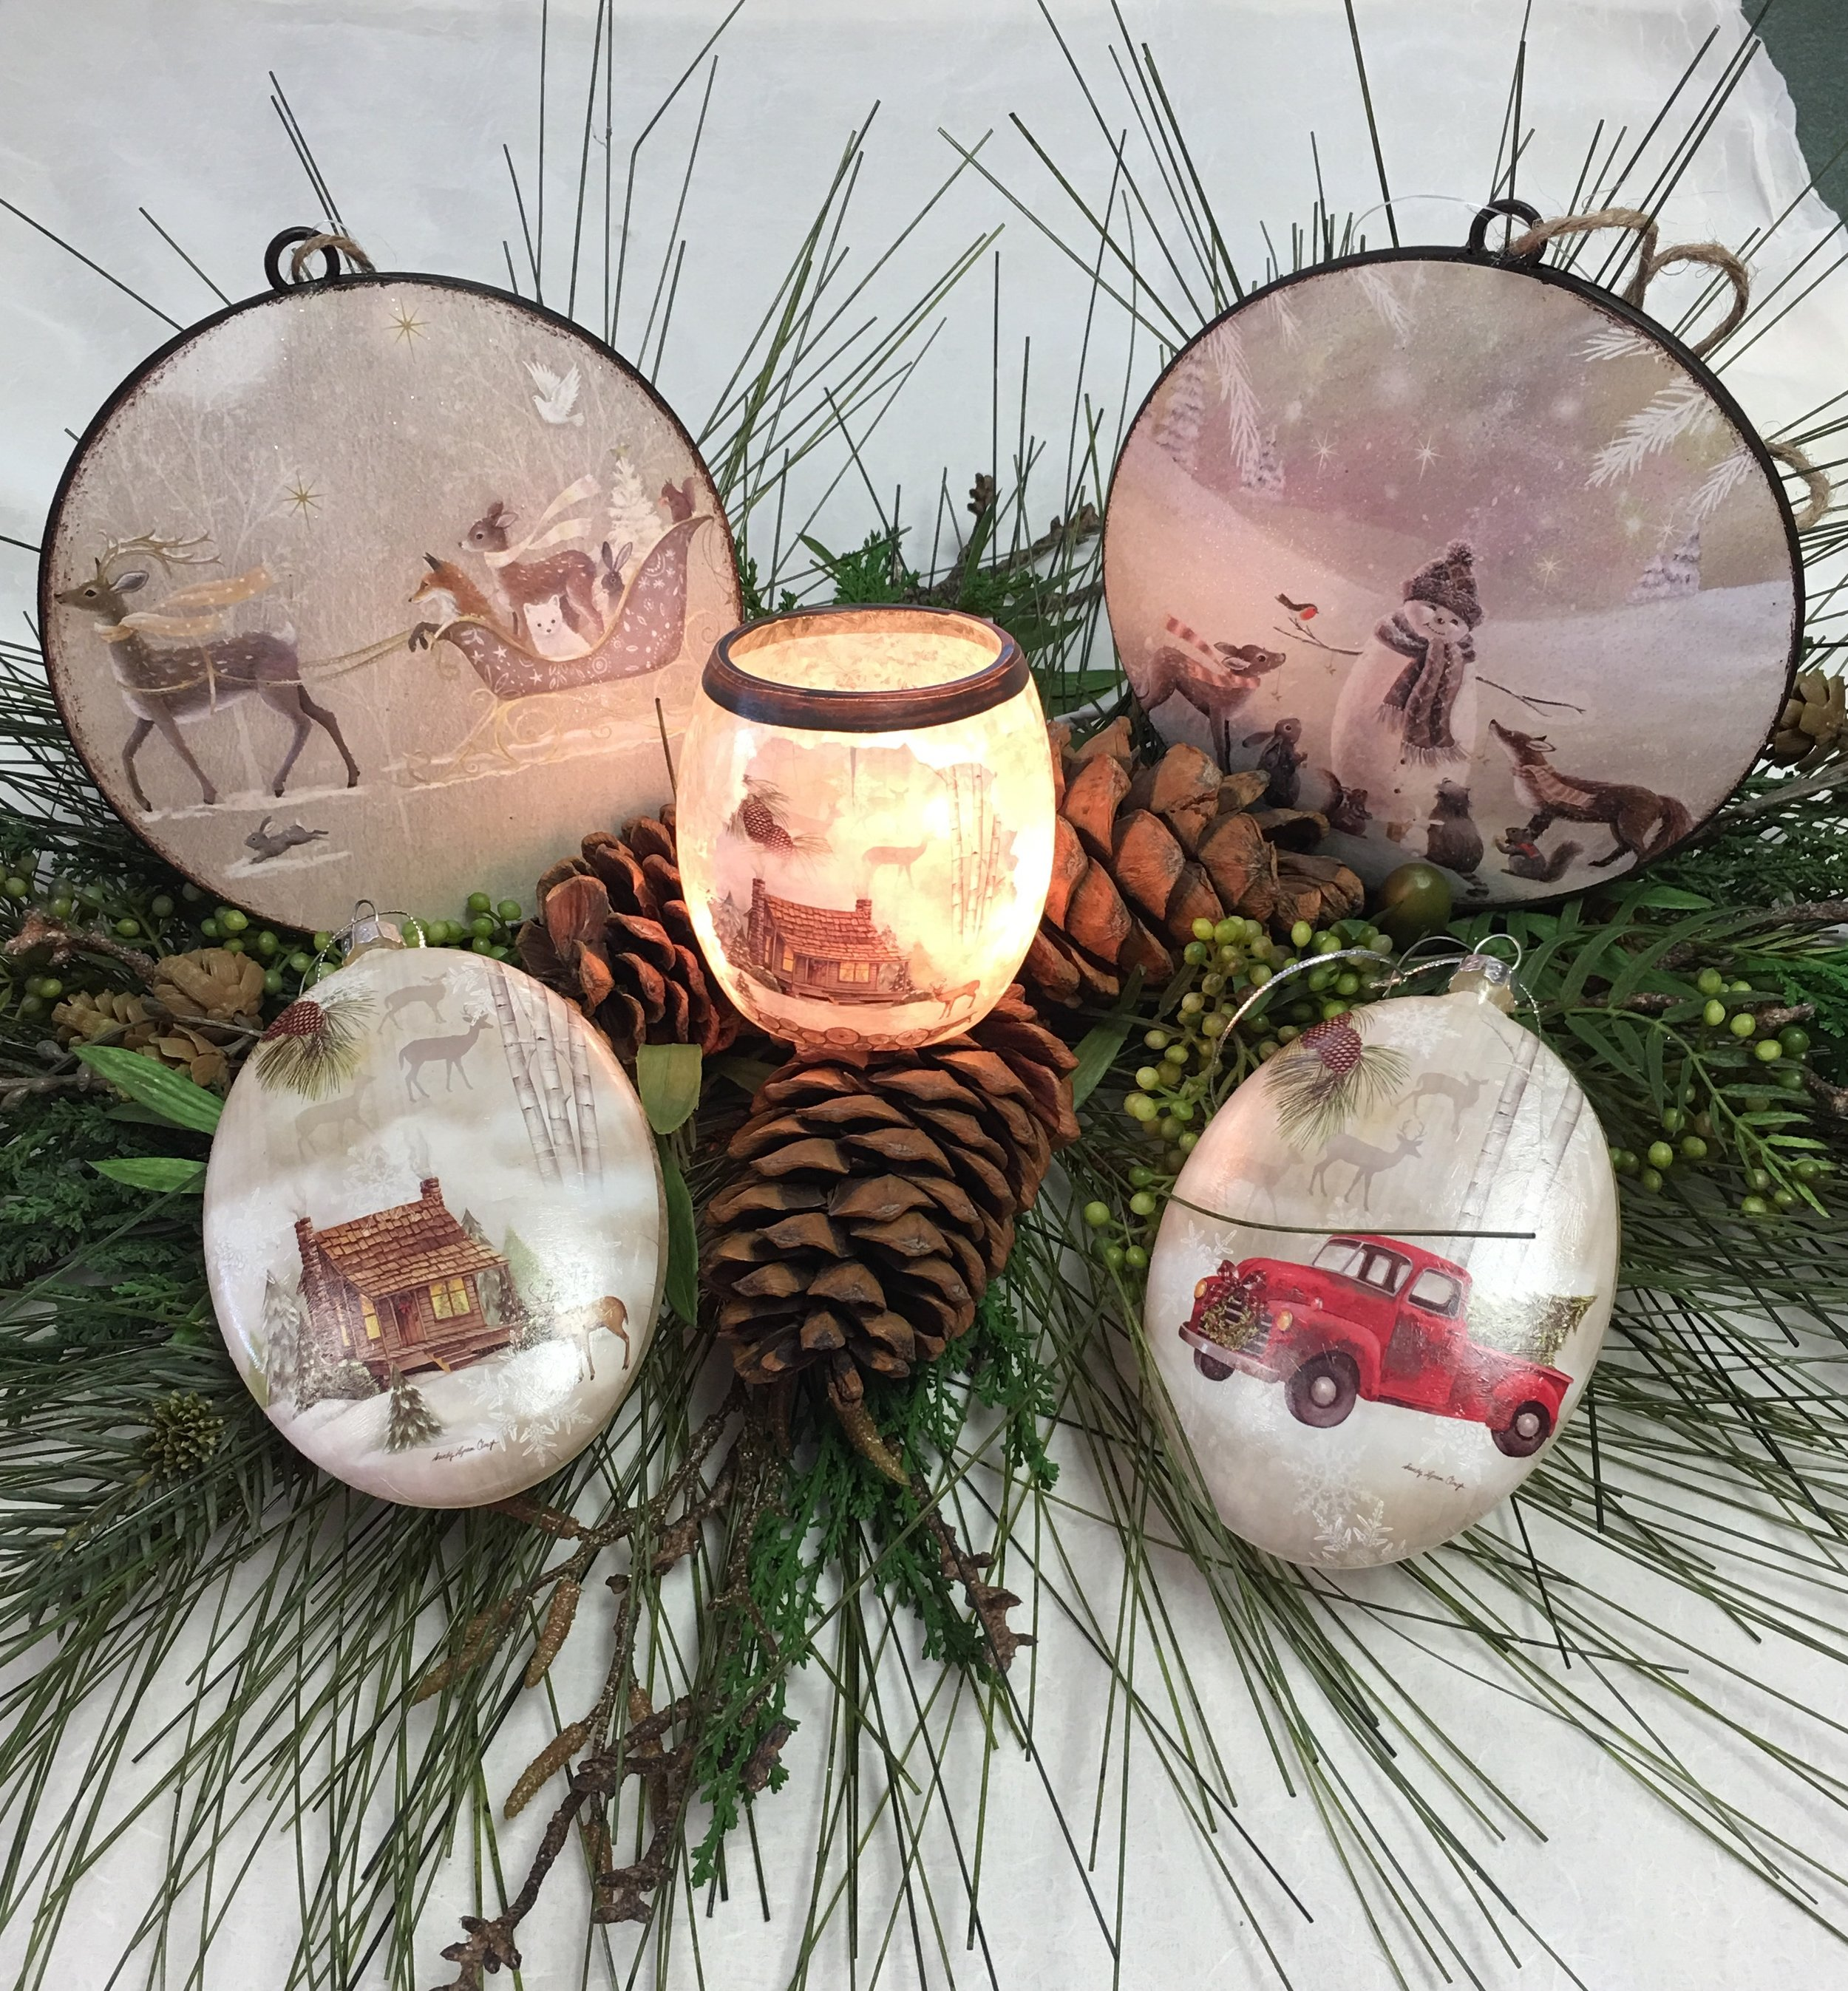 Ornaments by Accents Flags, Gifts, Home & Garden - Featured are beautiful rustic forest friends round ornaments and the popular Red Truck and Winter Cabin Glass Oblong Ornaments.Price: $9.50